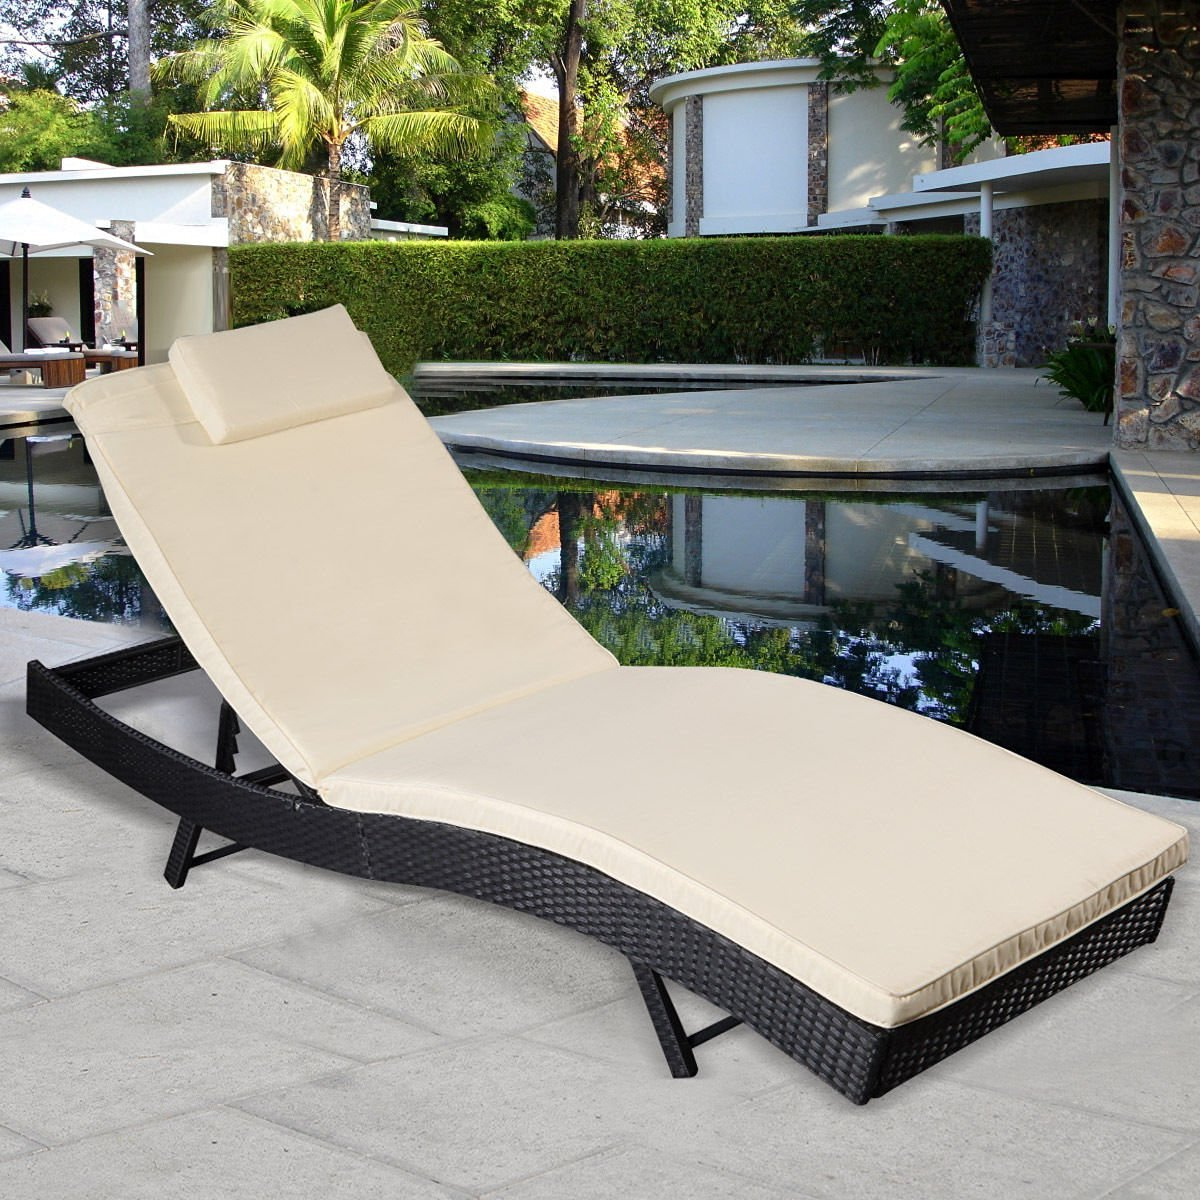 2019 Adjustable Outdoor Wicker Chaise Lounge Chairs With Cushion Within Cheap Lounge Pool Furniture, Find Lounge Pool Furniture (Gallery 24 of 25)